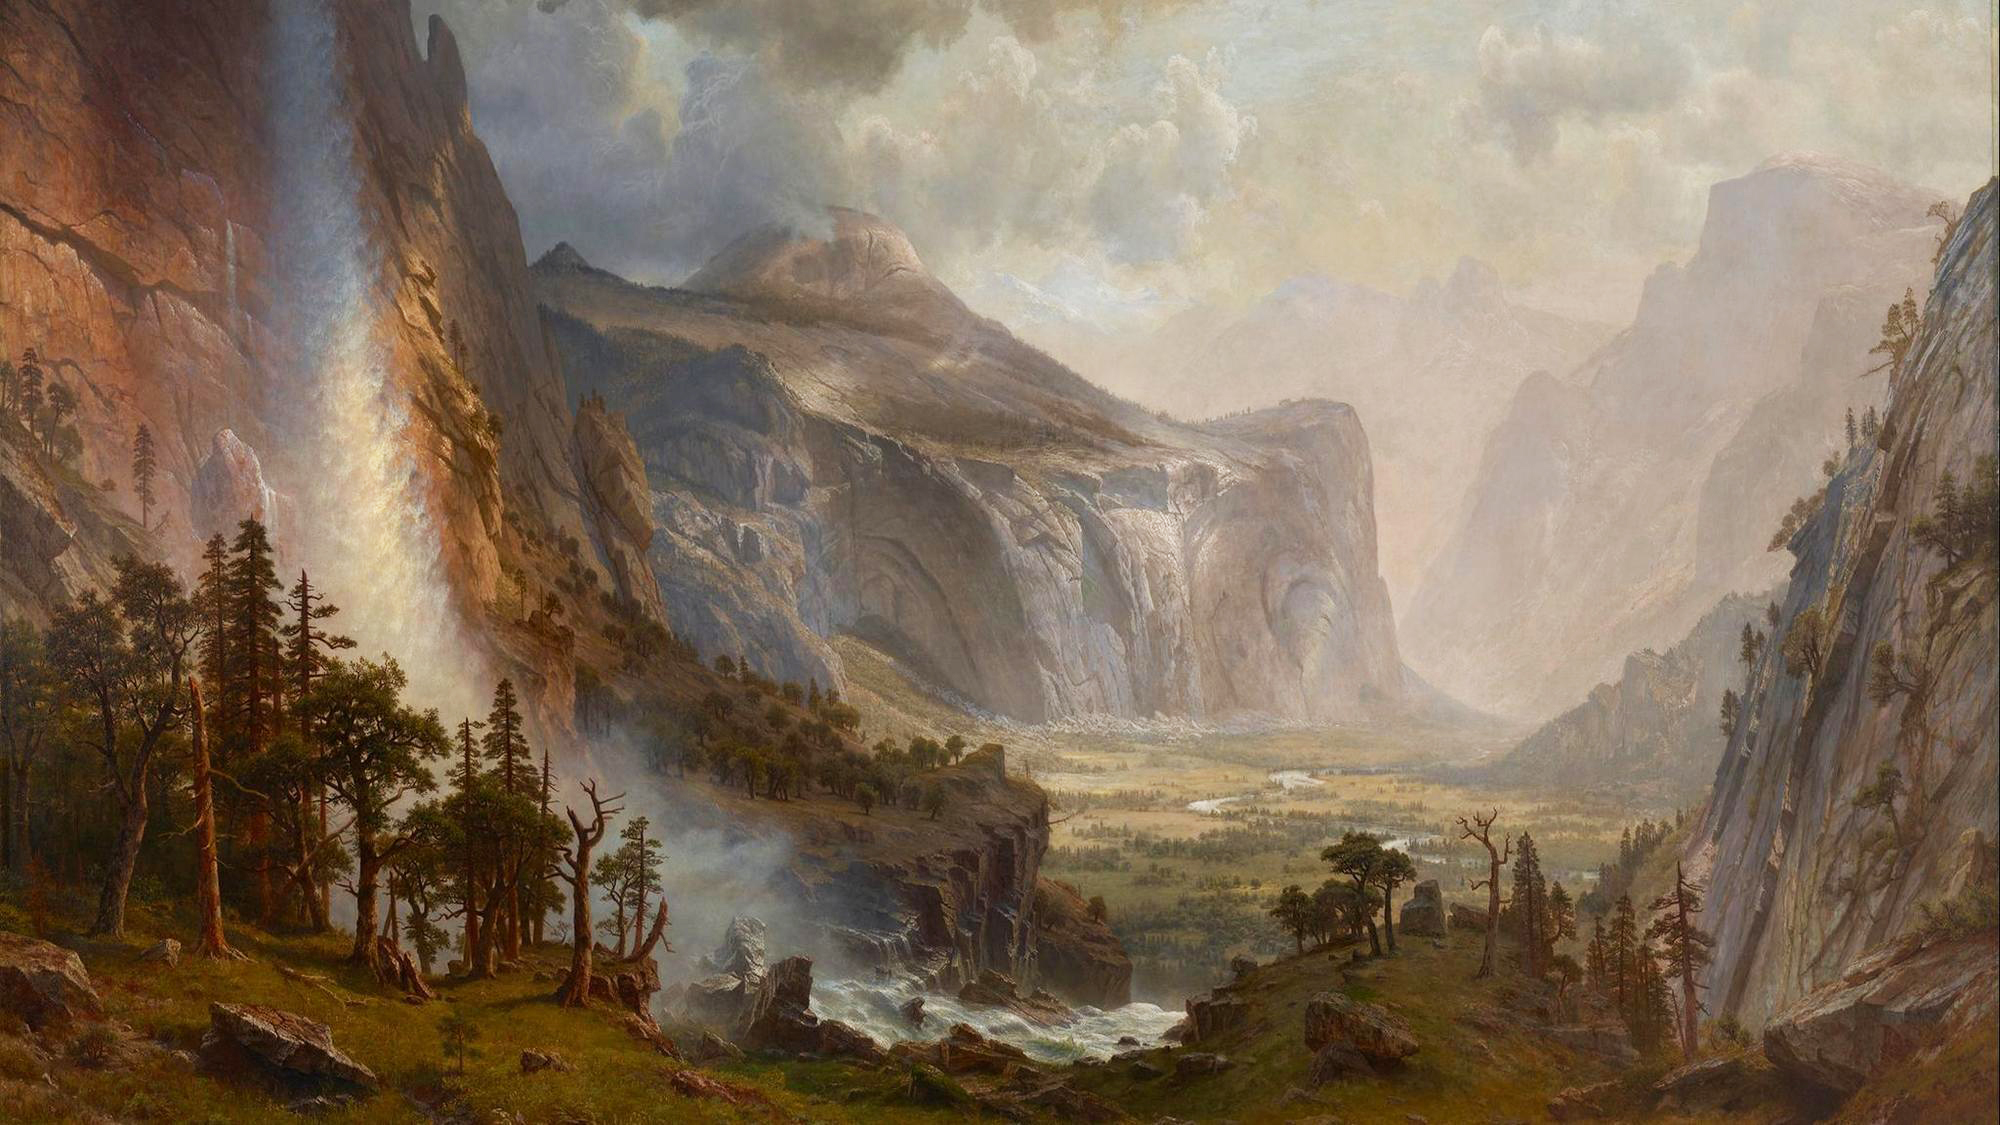 https://i2.wp.com/upload.wikimedia.org/wikipedia/commons/4/4a/The_Domes_of_the_Yosemite.jpg